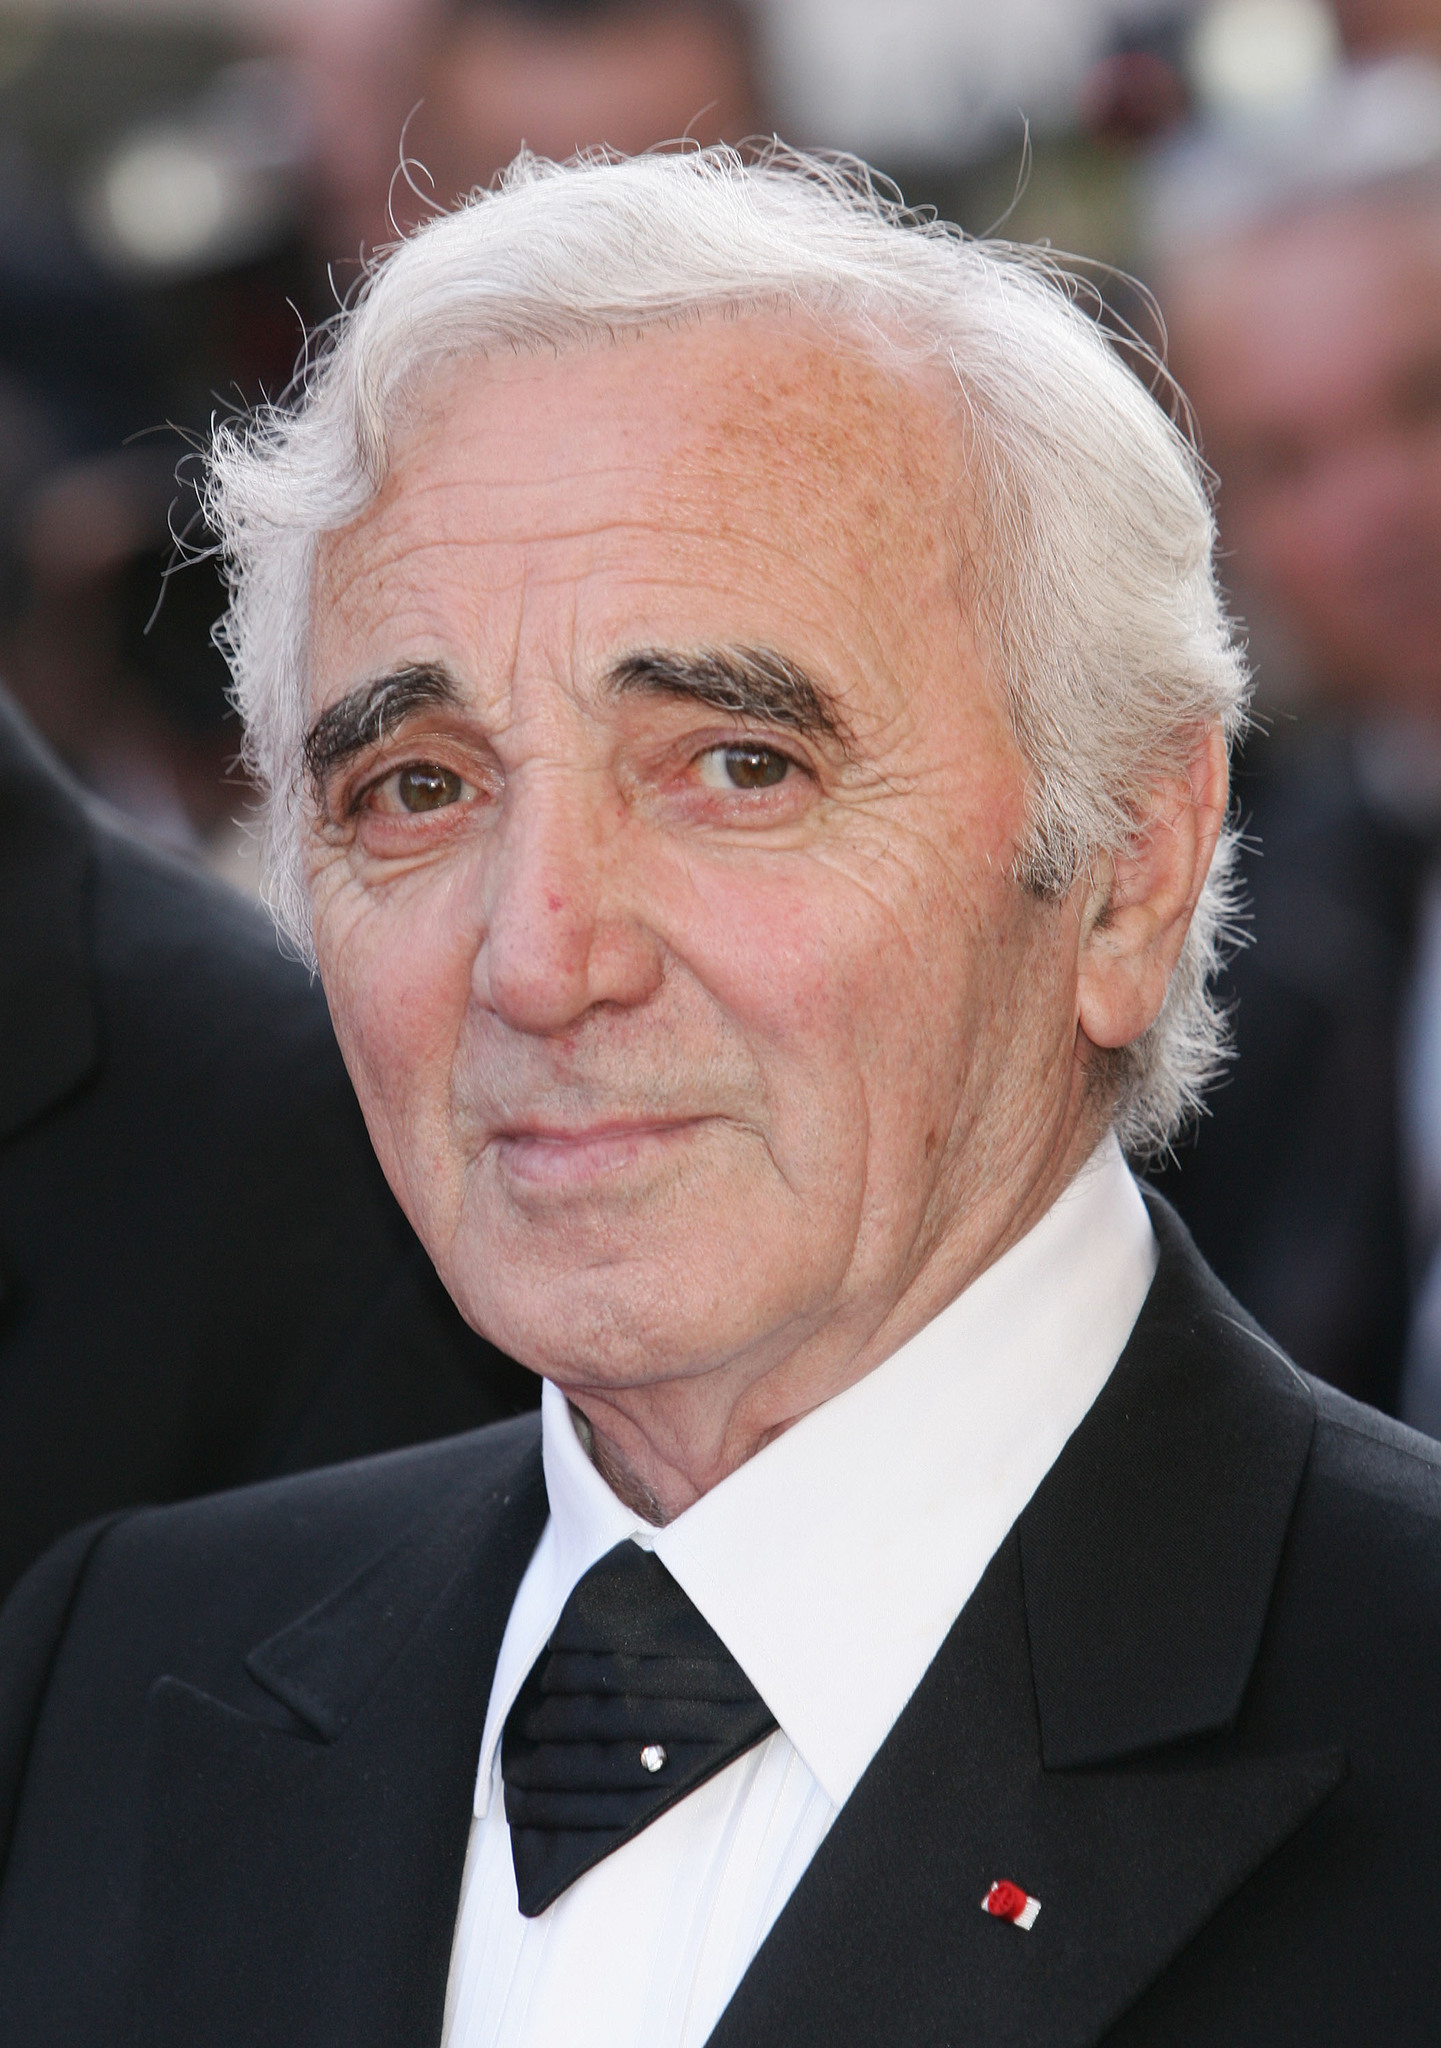 charles aznavour discography torrent download